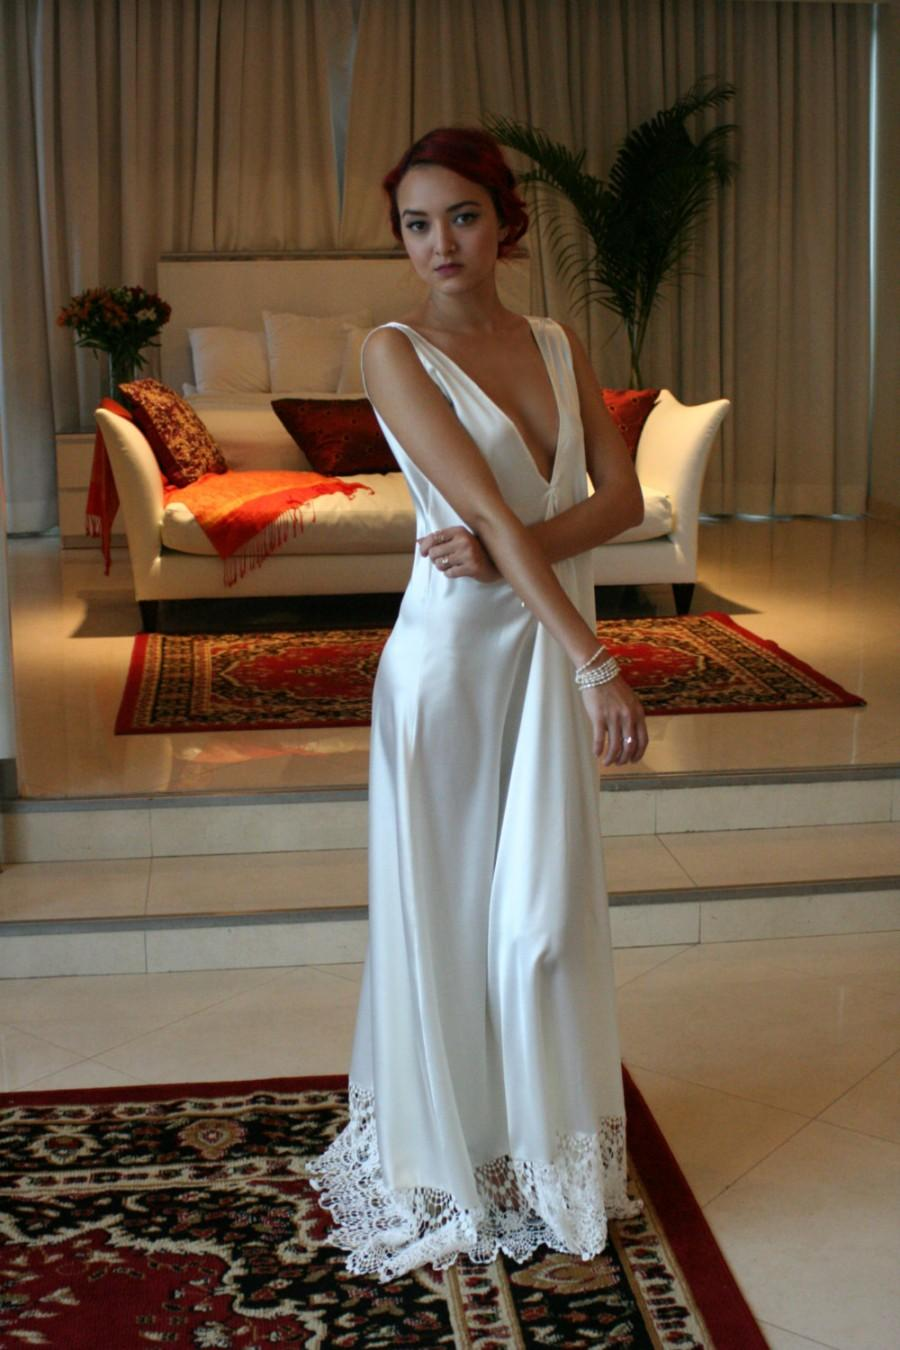 Bridal Nightgown Satin Off White Wedding Lingerie Venise Lace ...